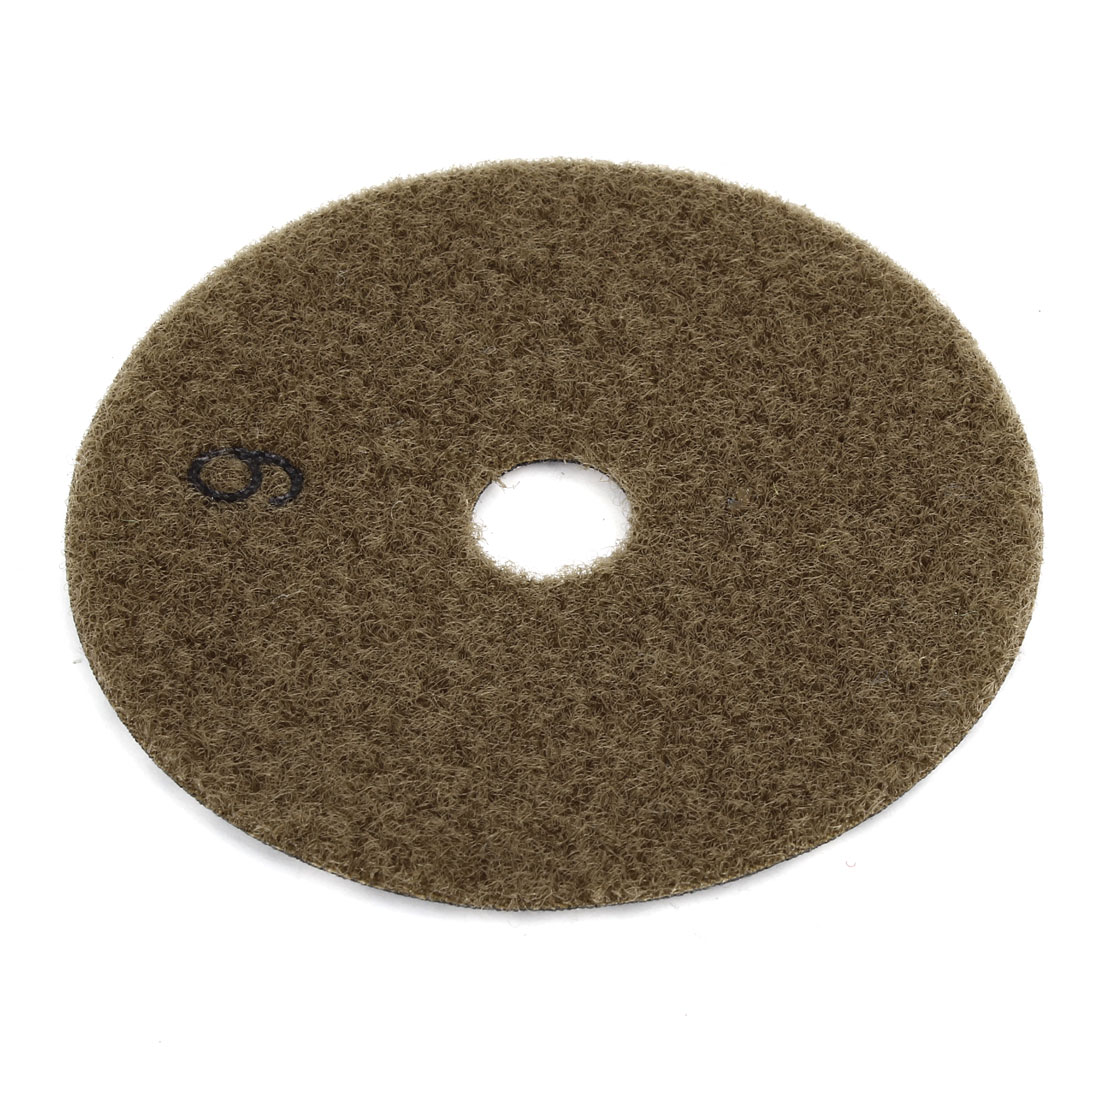 Gray Brown 10cm Dia Diamond Polishing Pad 4mm Thick for Concrete Granite